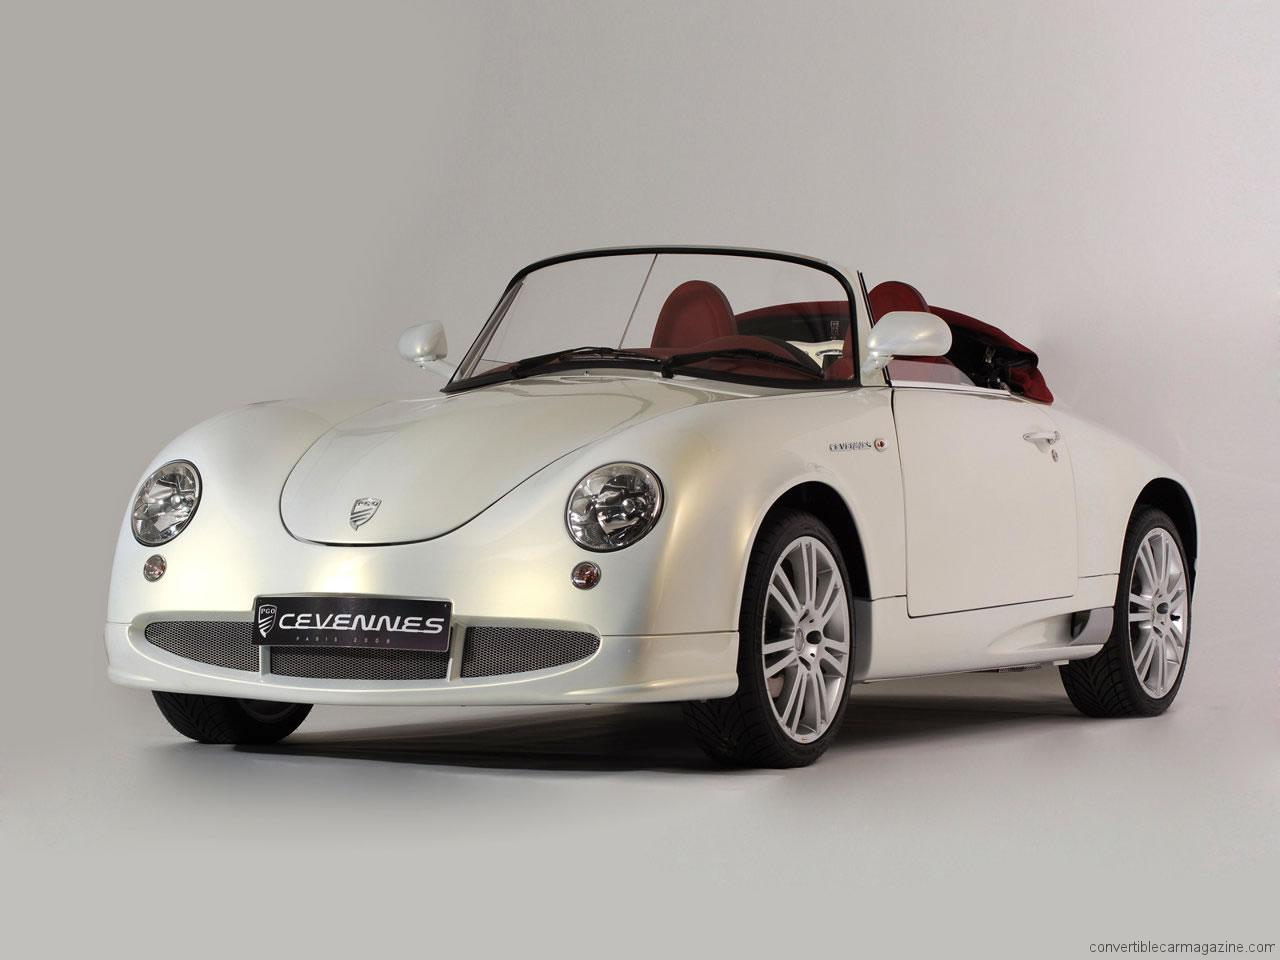 Pgo Cevennes Buying Guide